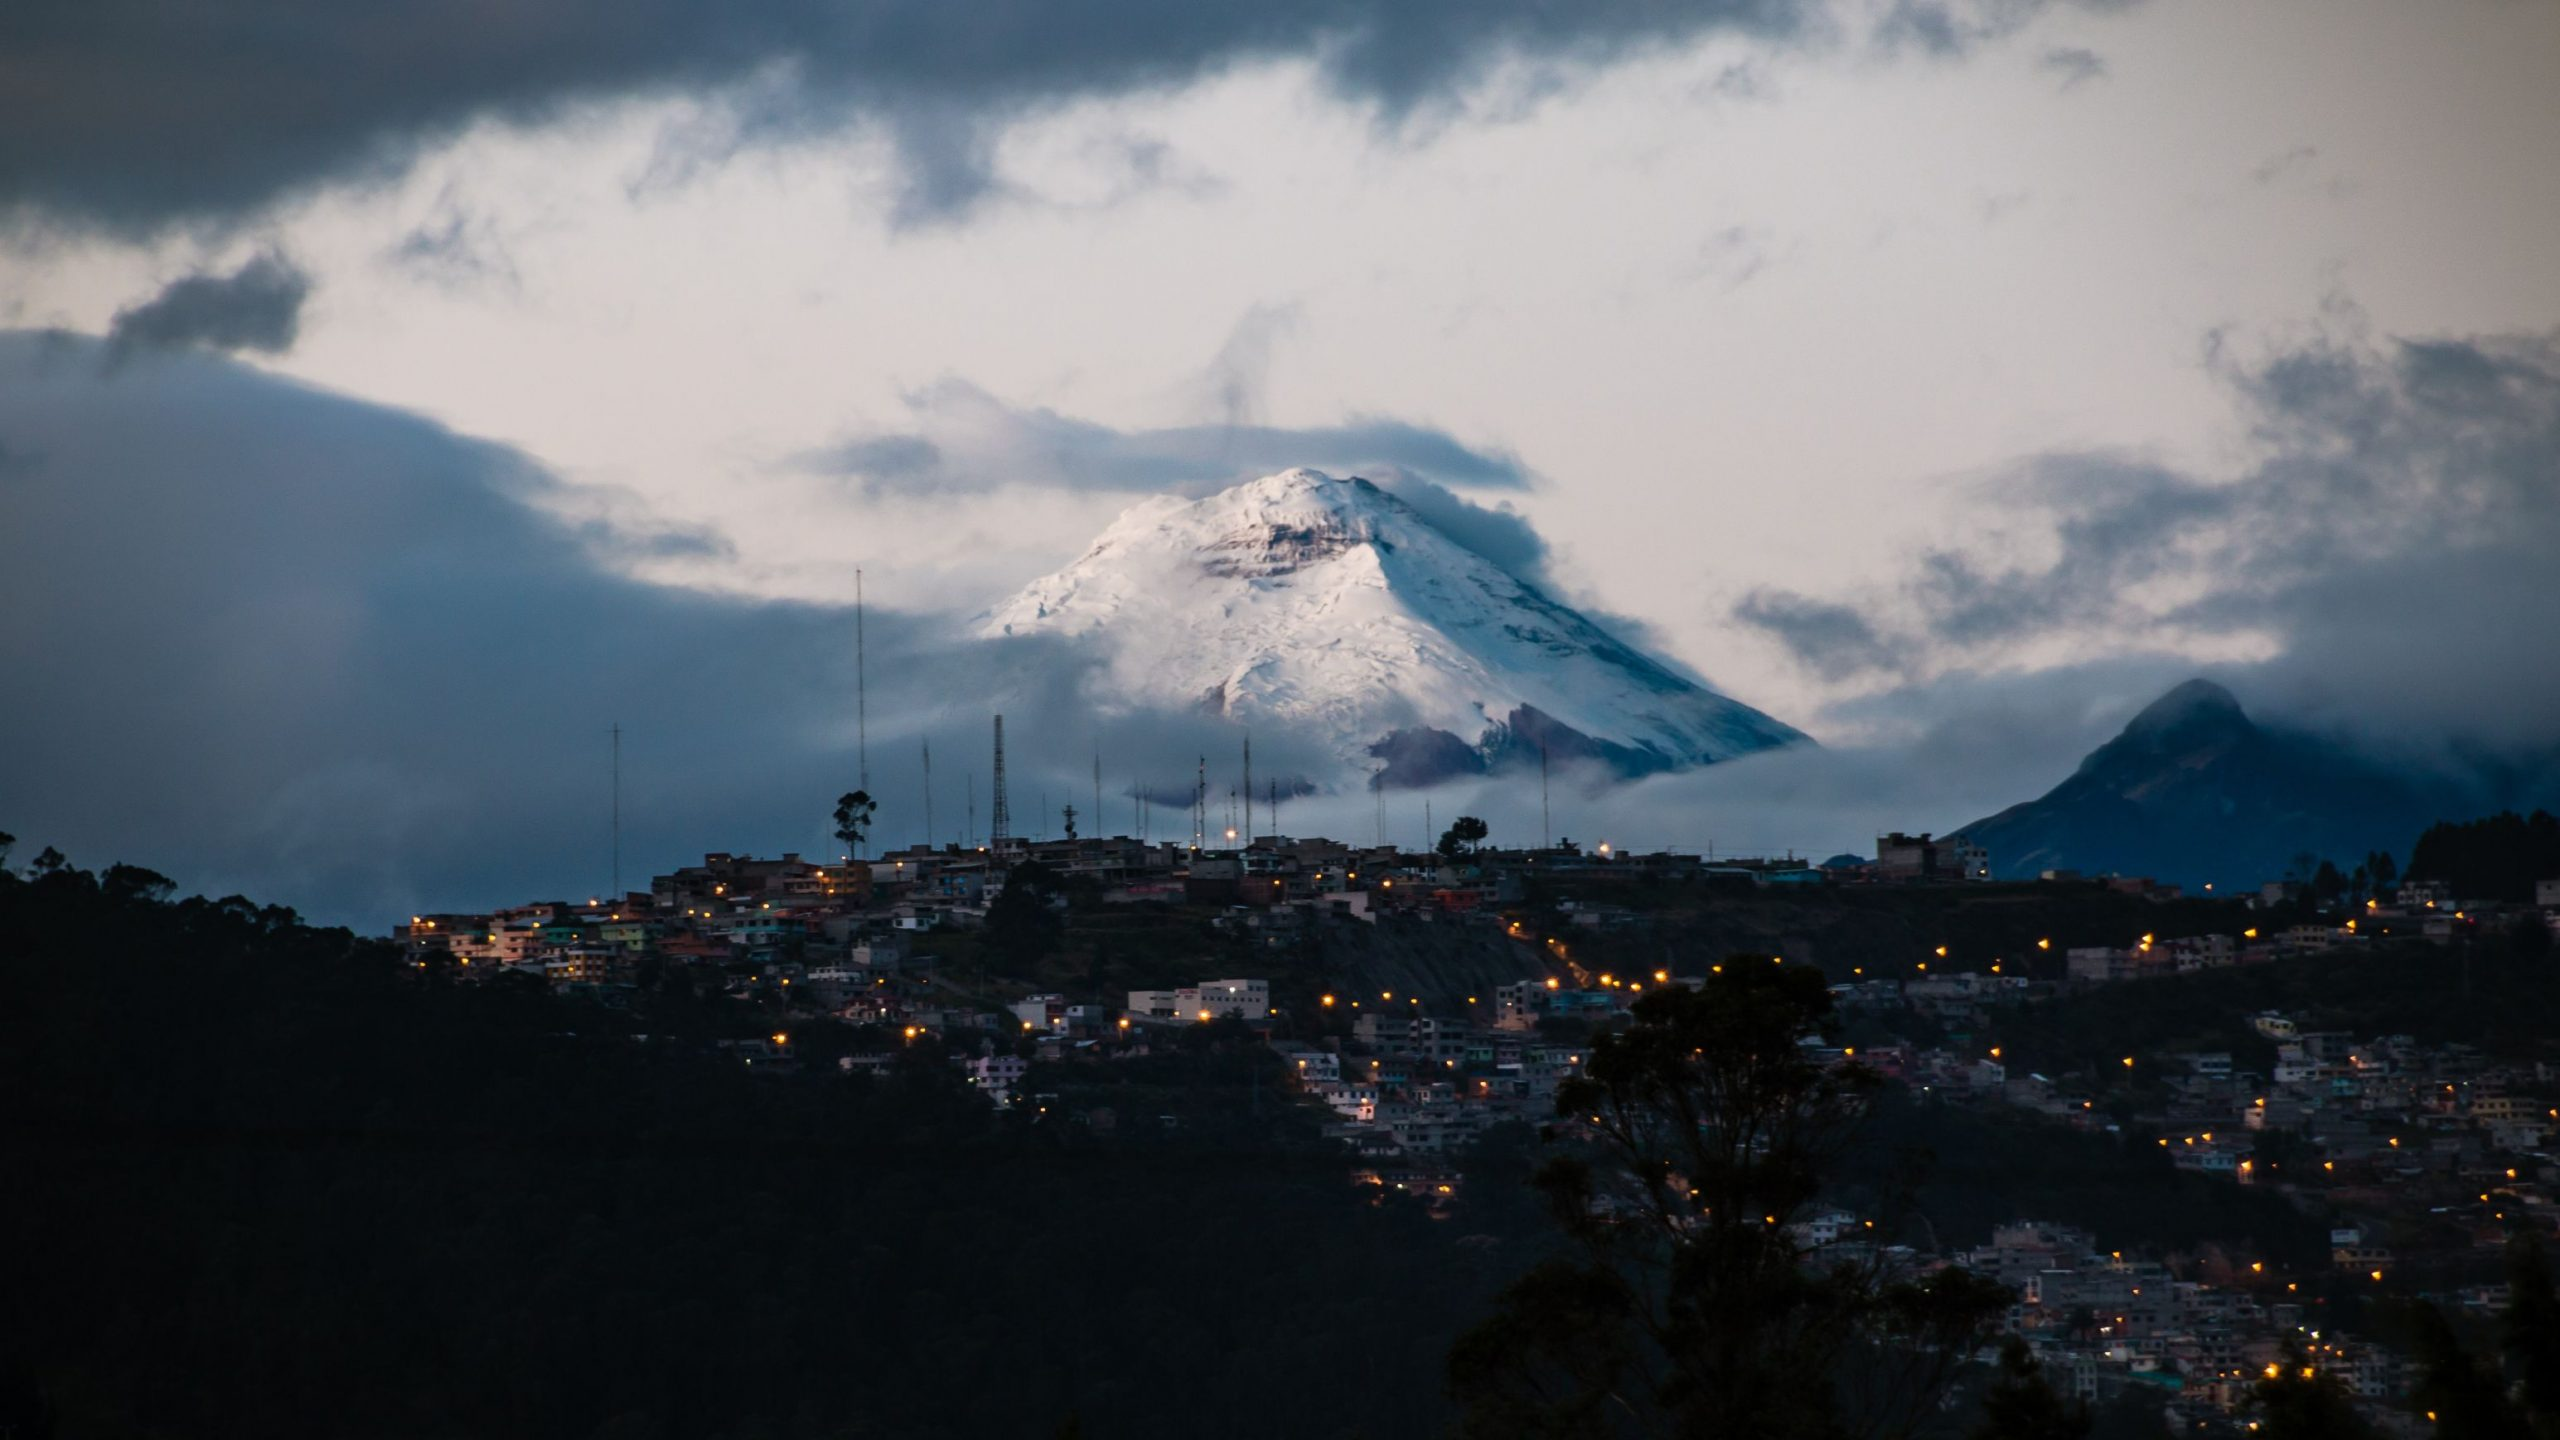 Quite, Ecuador cityscape at night with a snow covered mountain